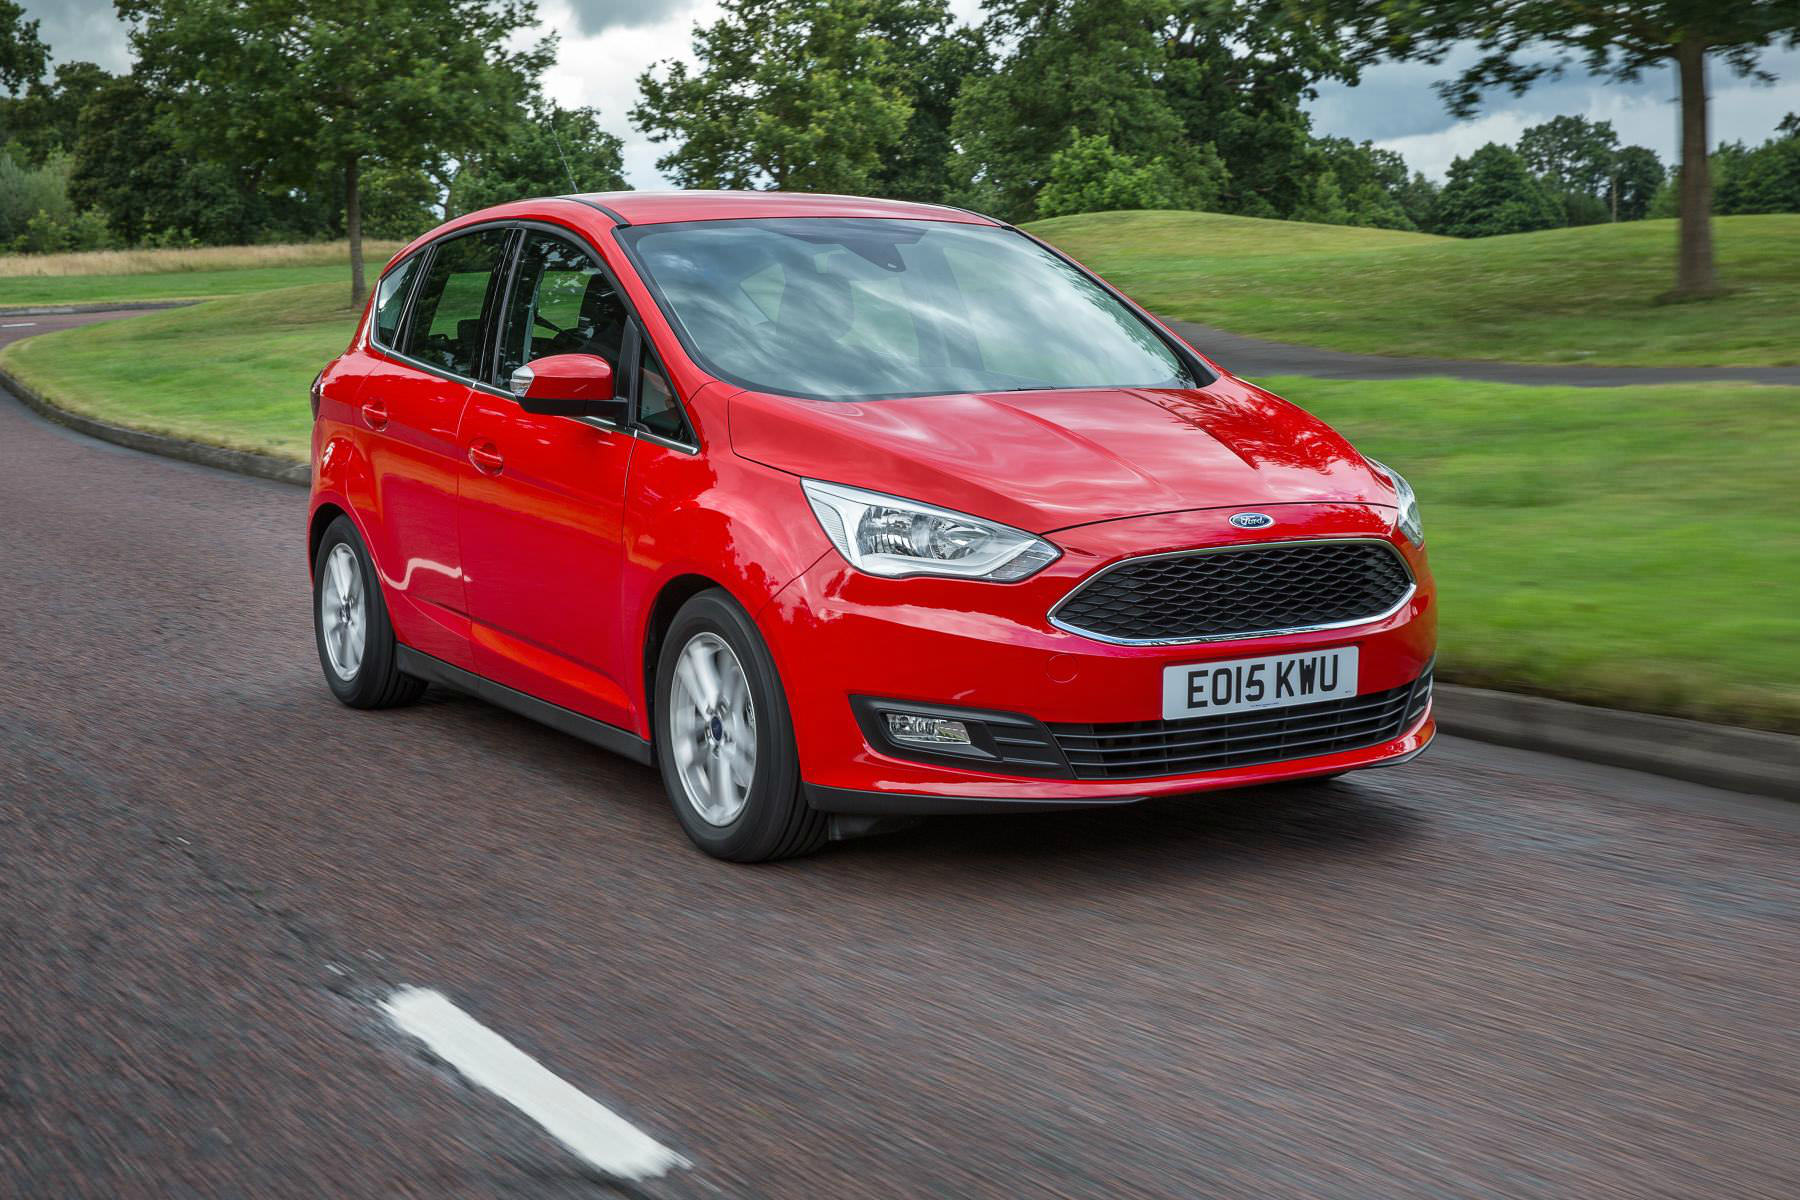 image of a red ford c max car on a city road